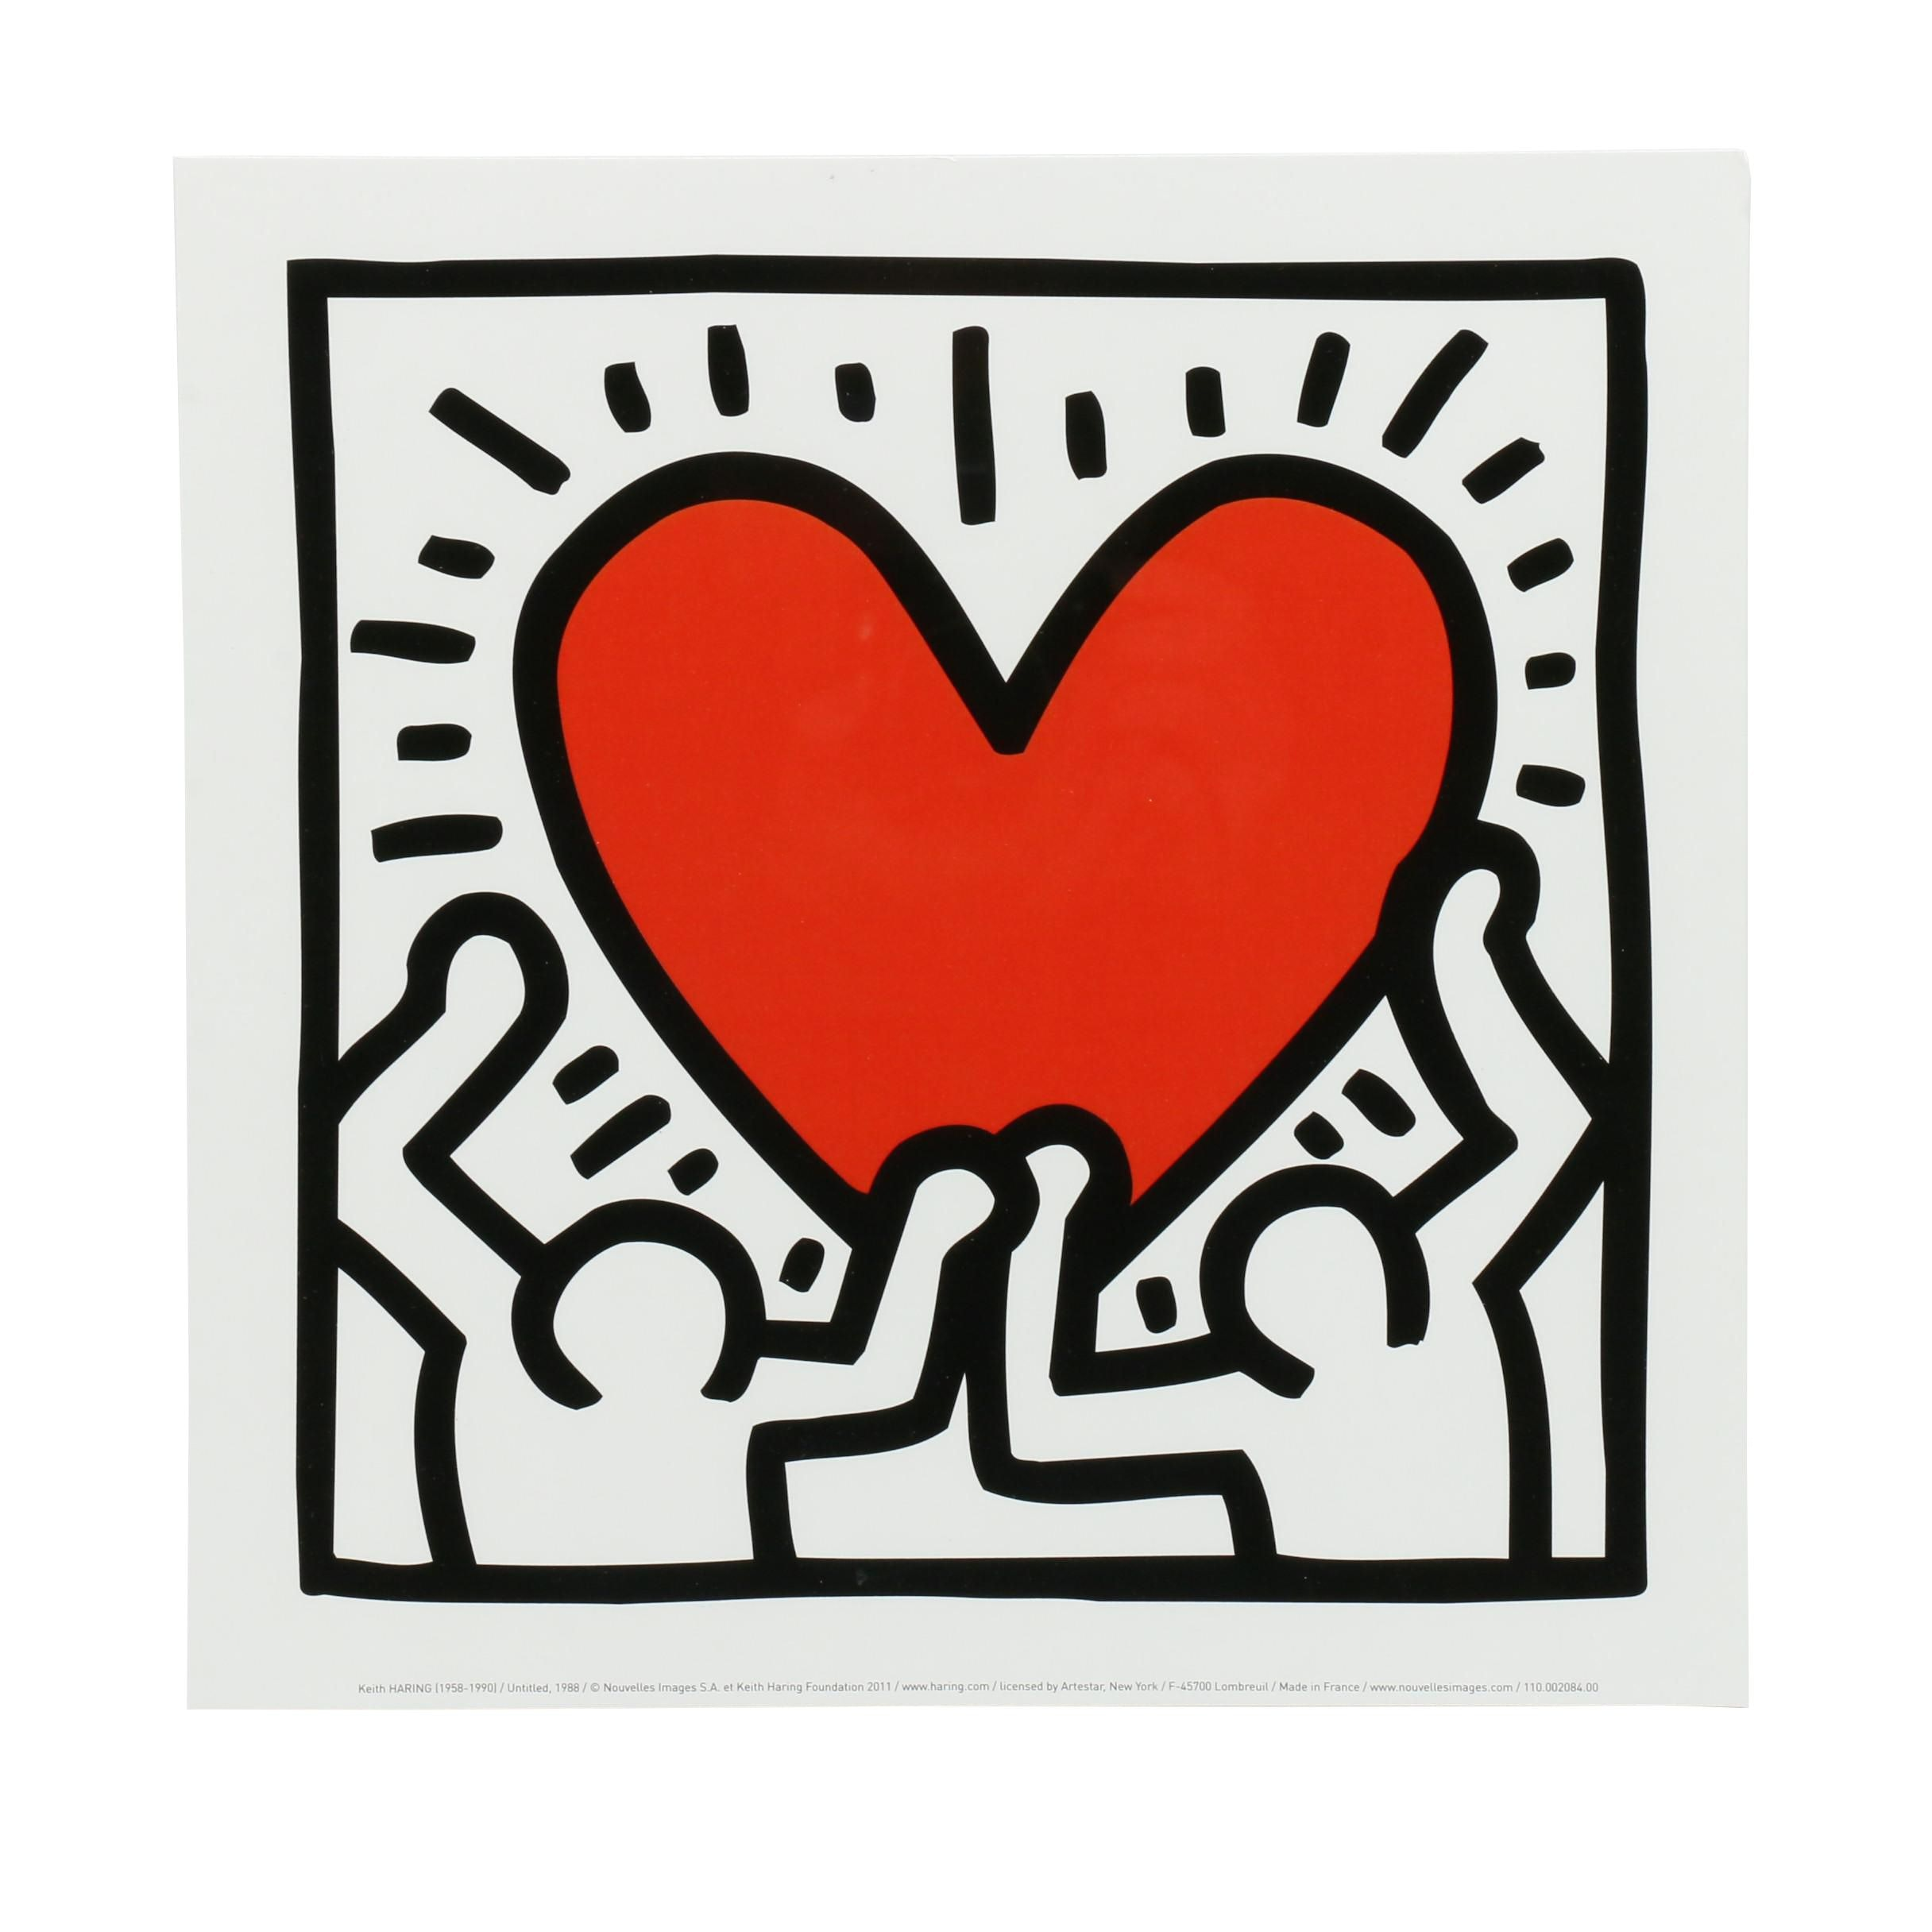 Giclée After Keith Harting Figures with Heart